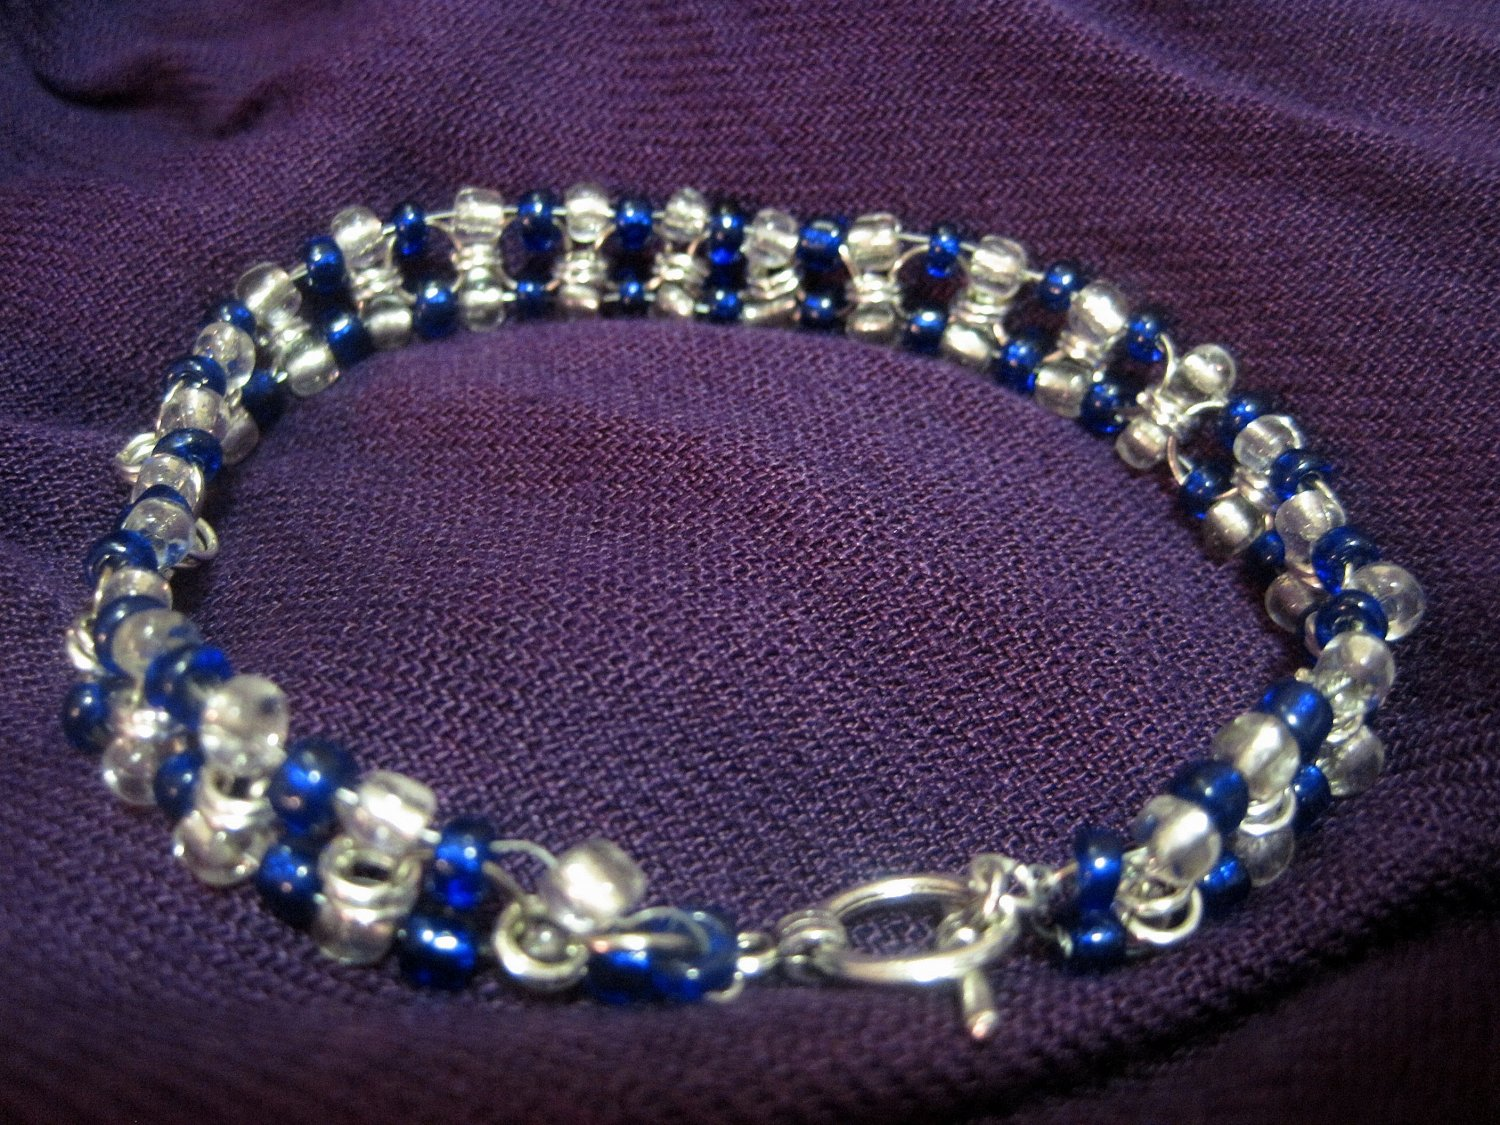 Blue and Clear Beaded Chainmail bracelet